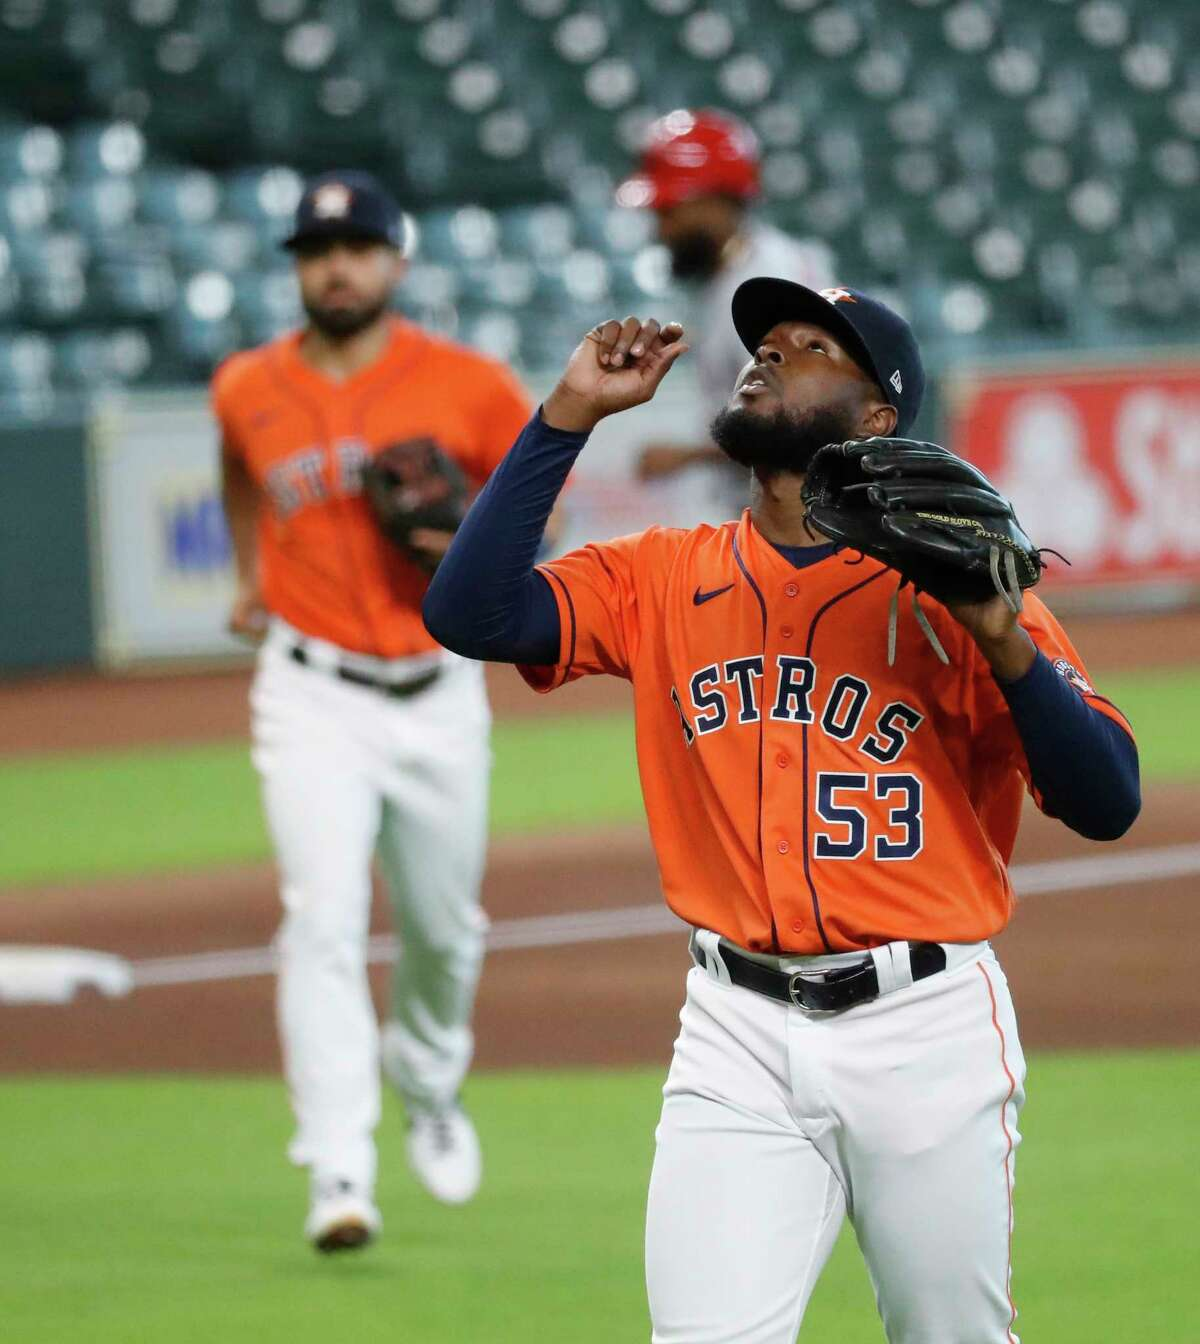 Houston Astros starting pitcher Cristian Javier (53) reacts as he walked back to the dugout after the third inning of an MLB baseball game at Minute Maid Park, Tuesday, August 25, 2020, in Houston.